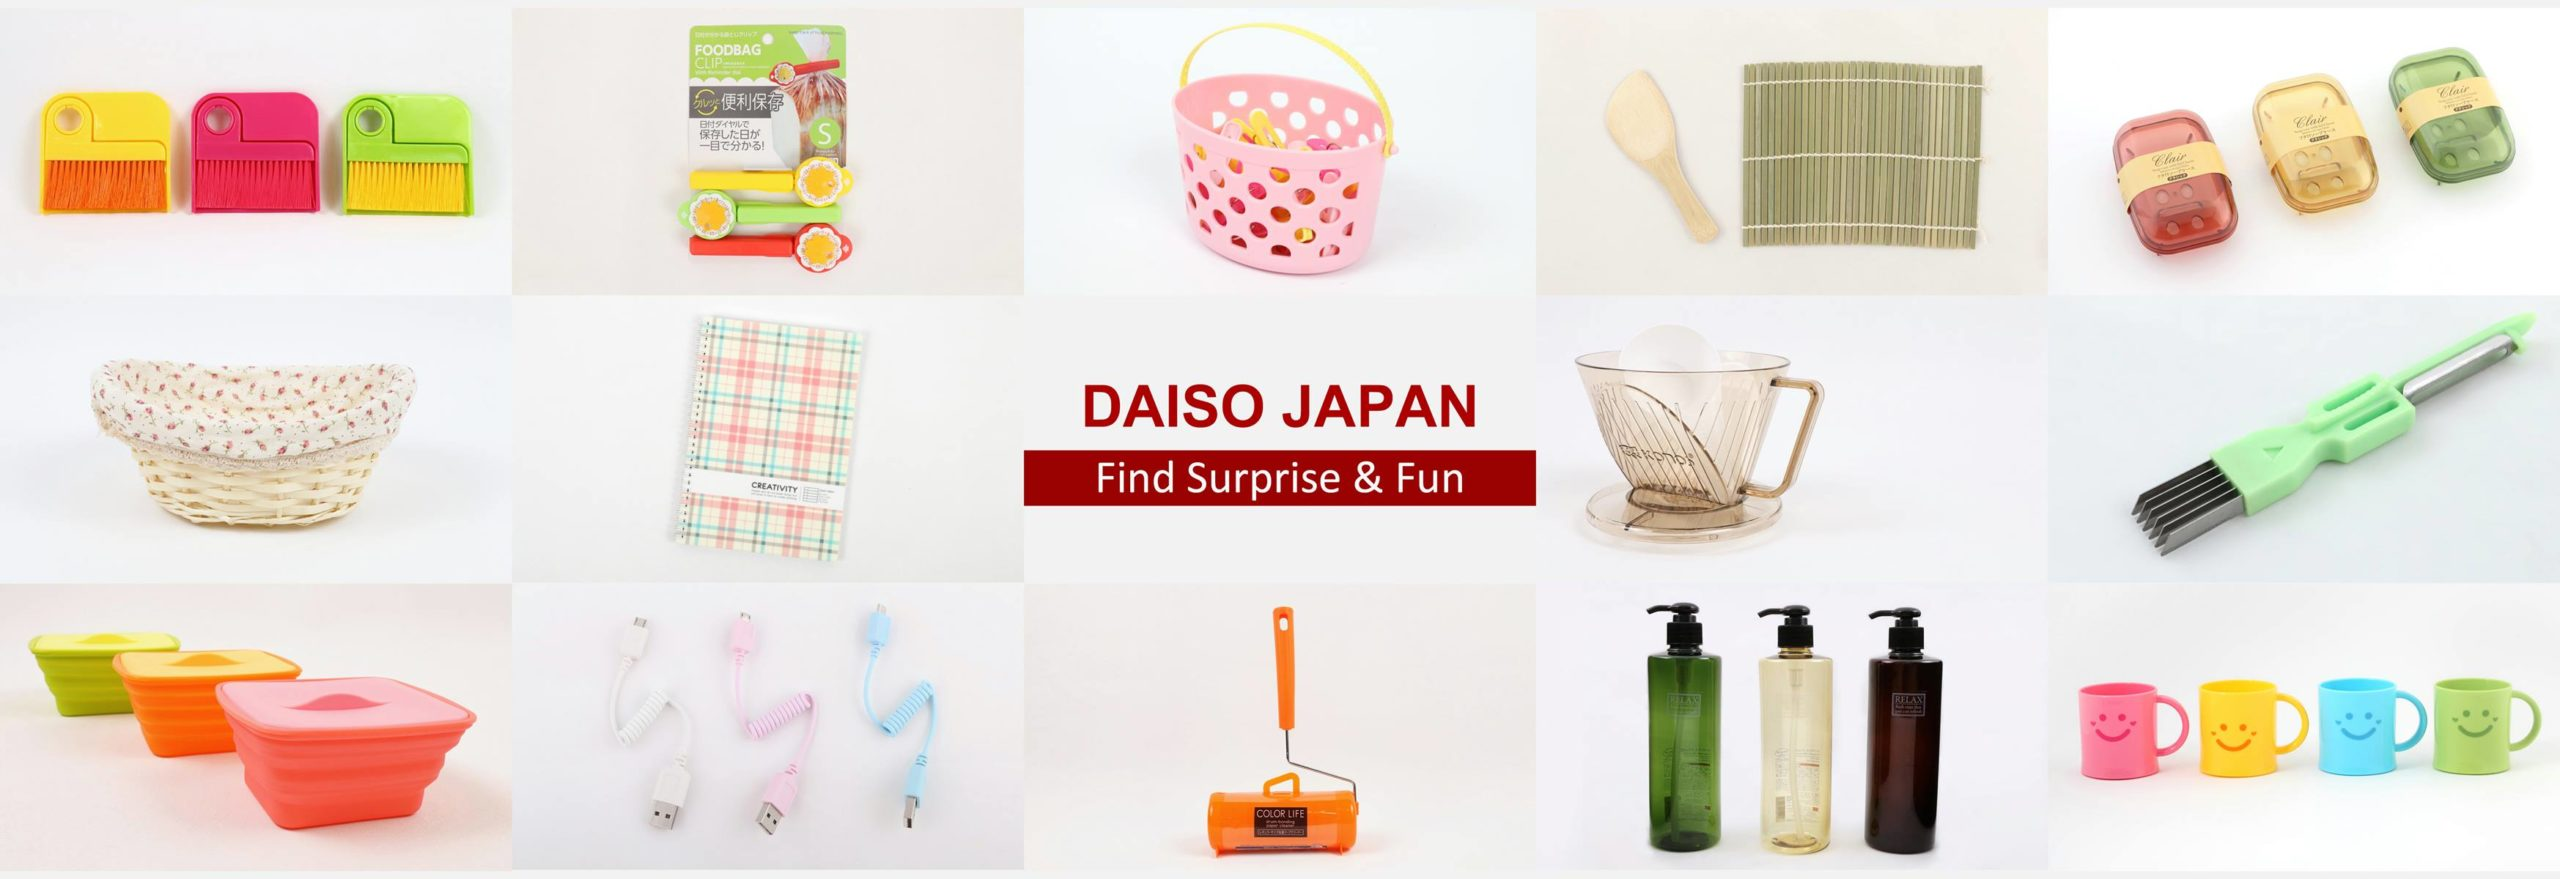 Daiso Products